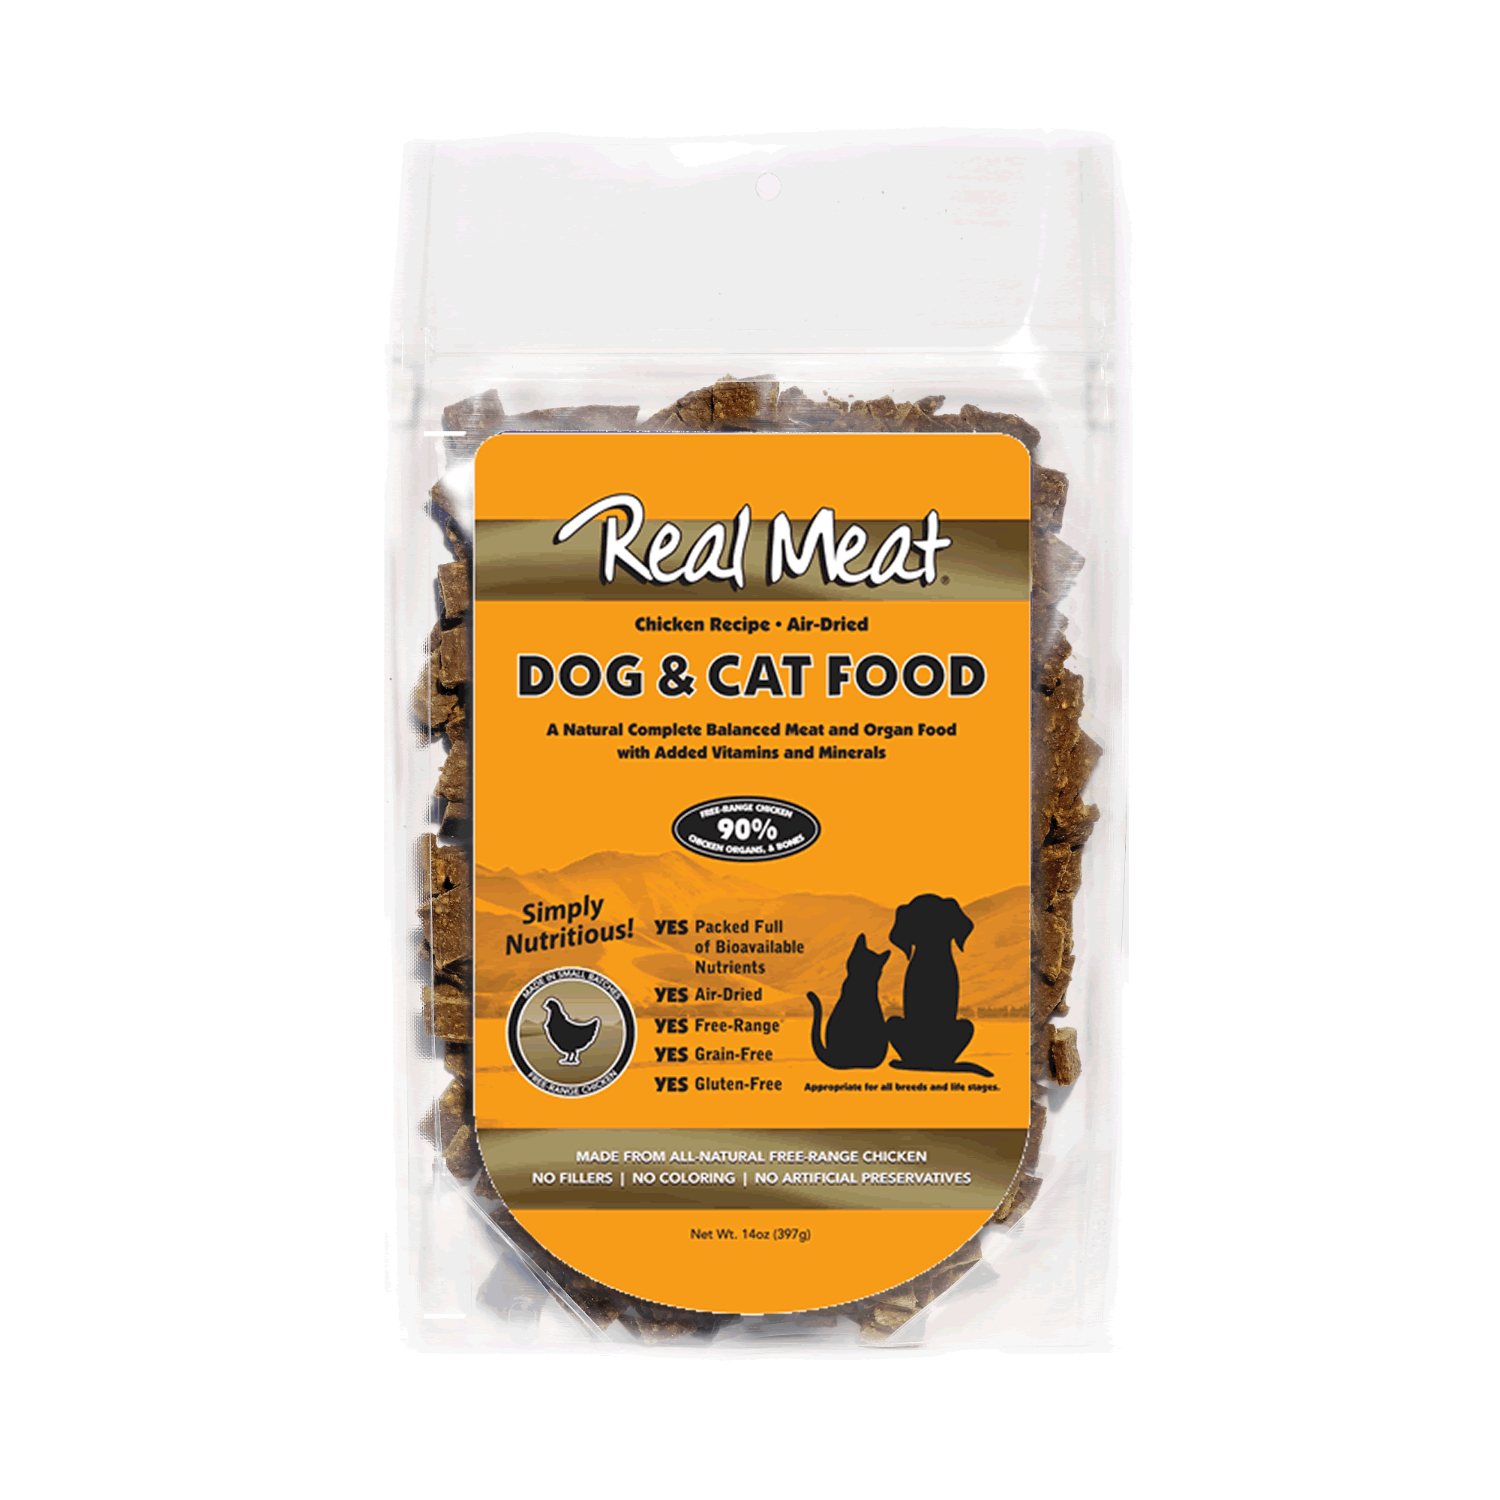 Real Meat Dog and Cat Food - Chicken